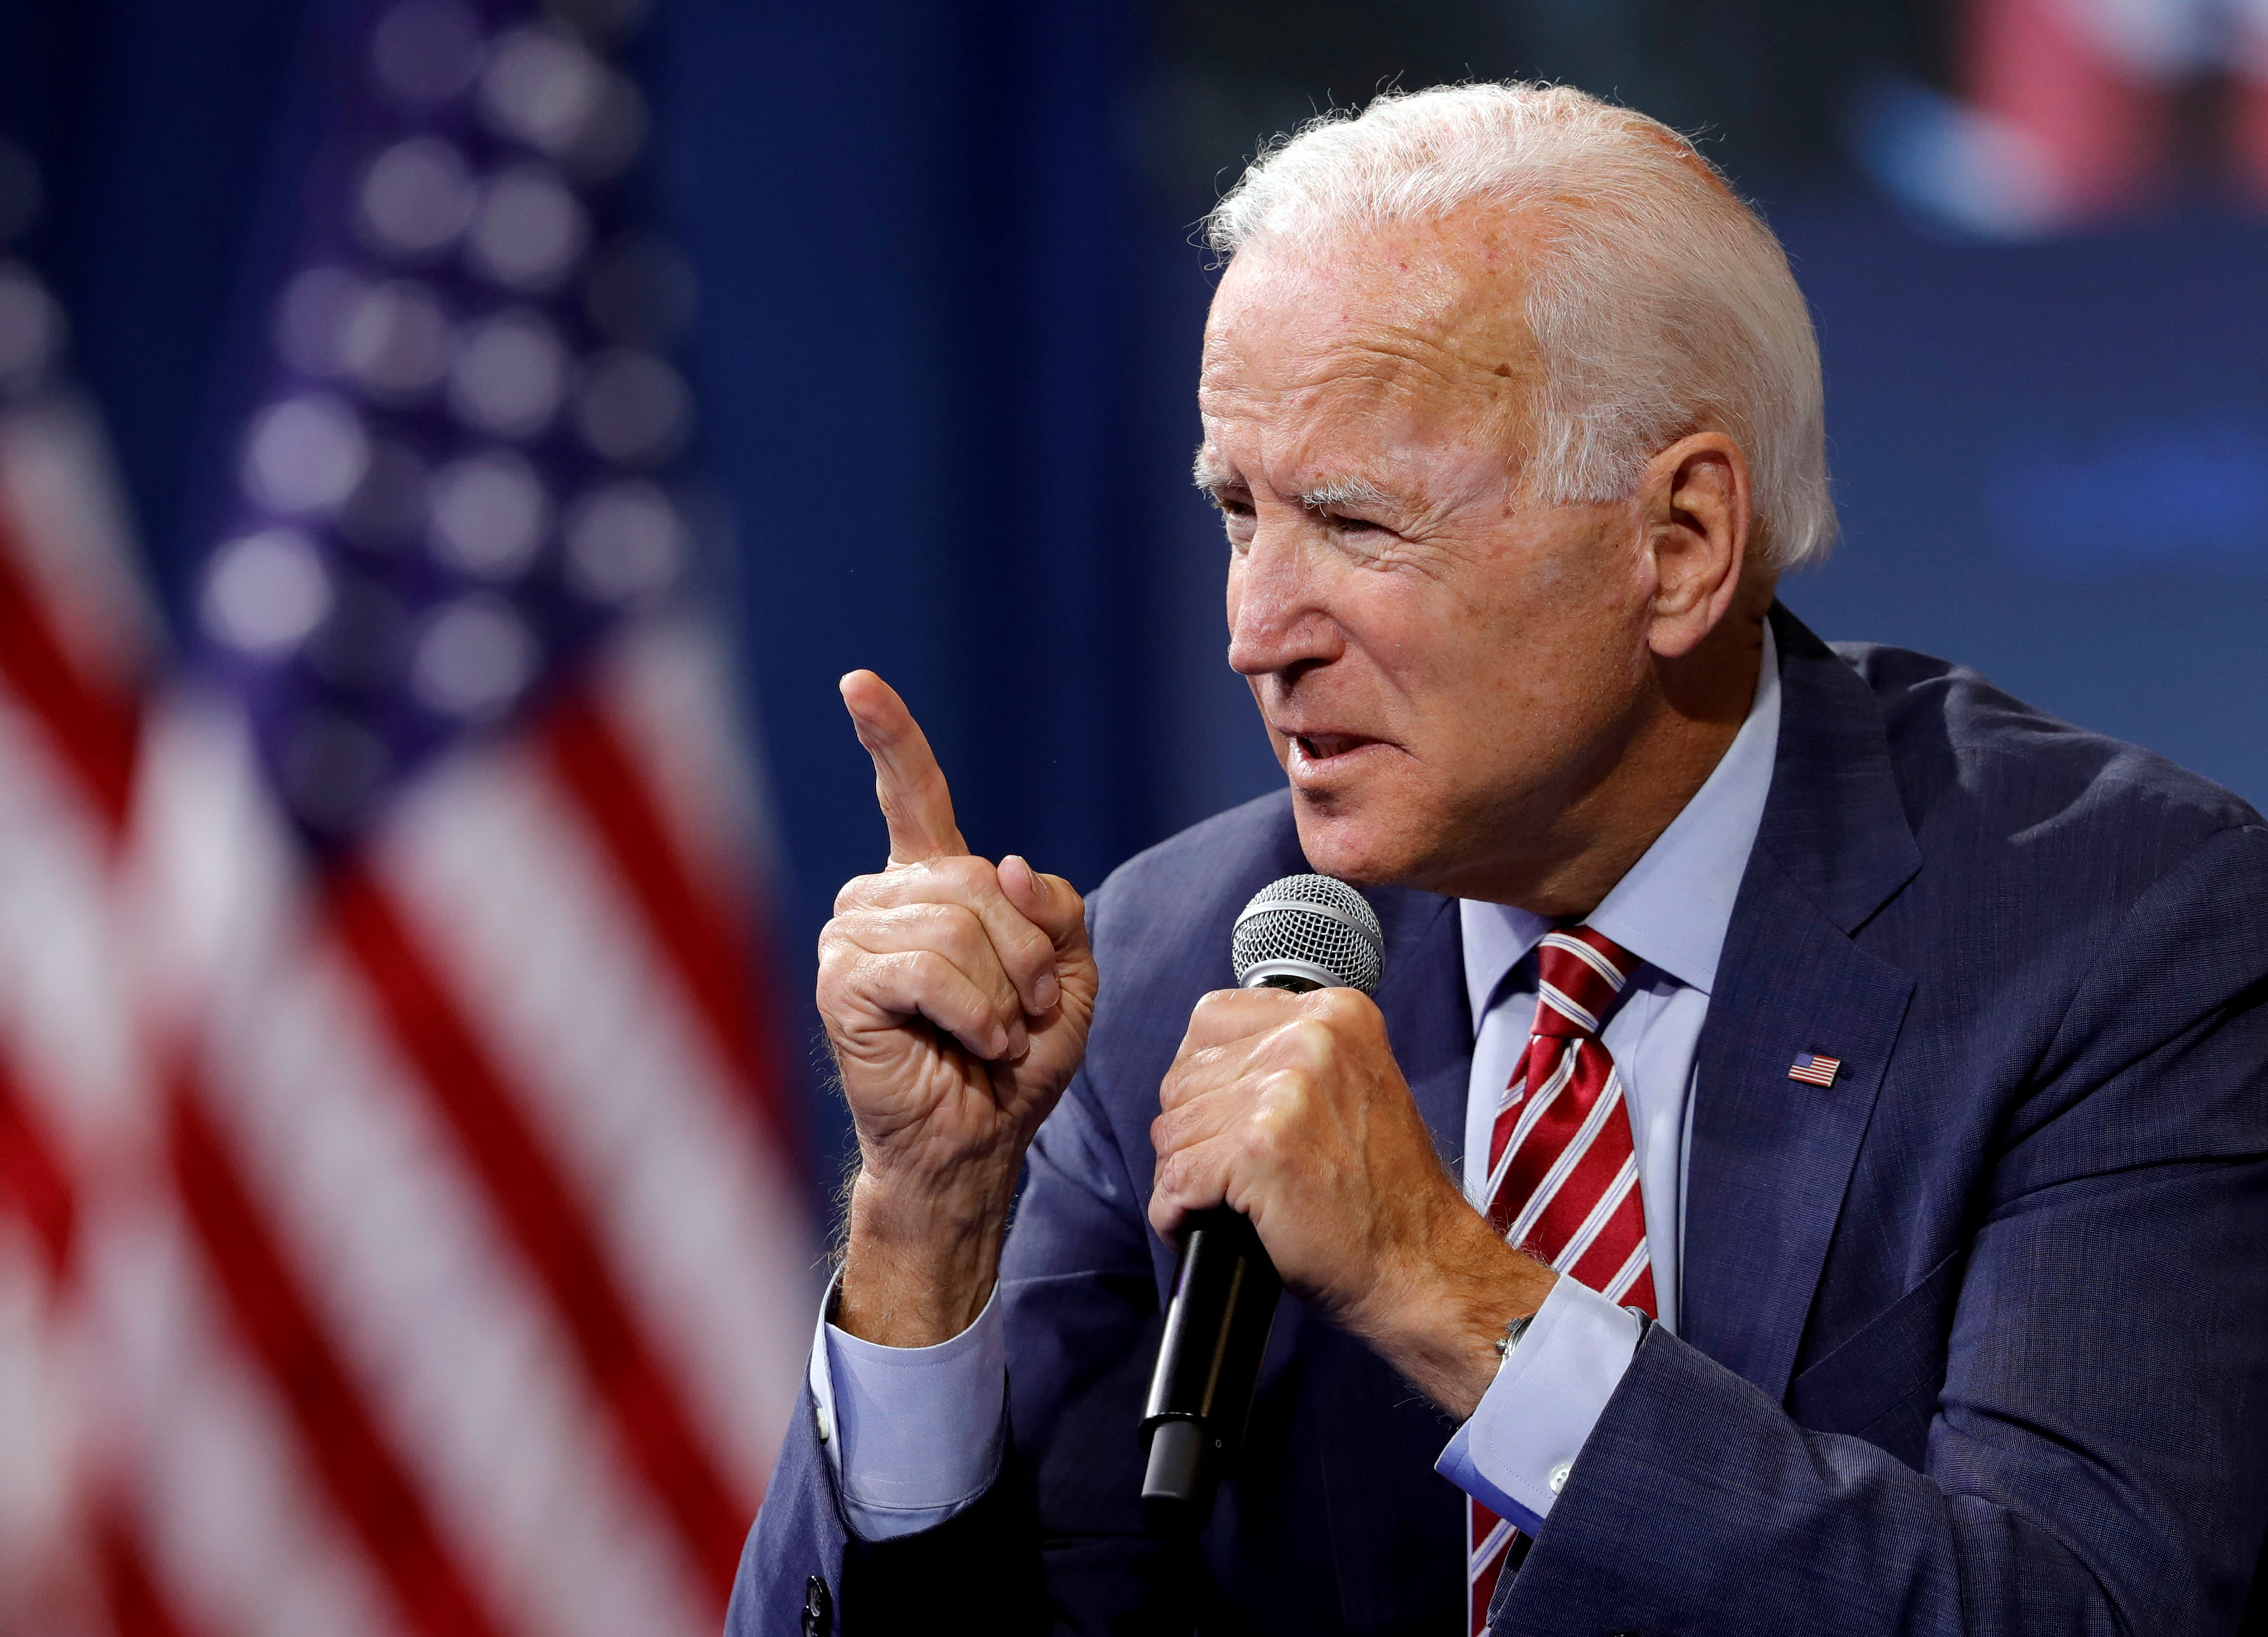 Biden wants to get rid of law that shields companies like Facebook from liability for what their users post